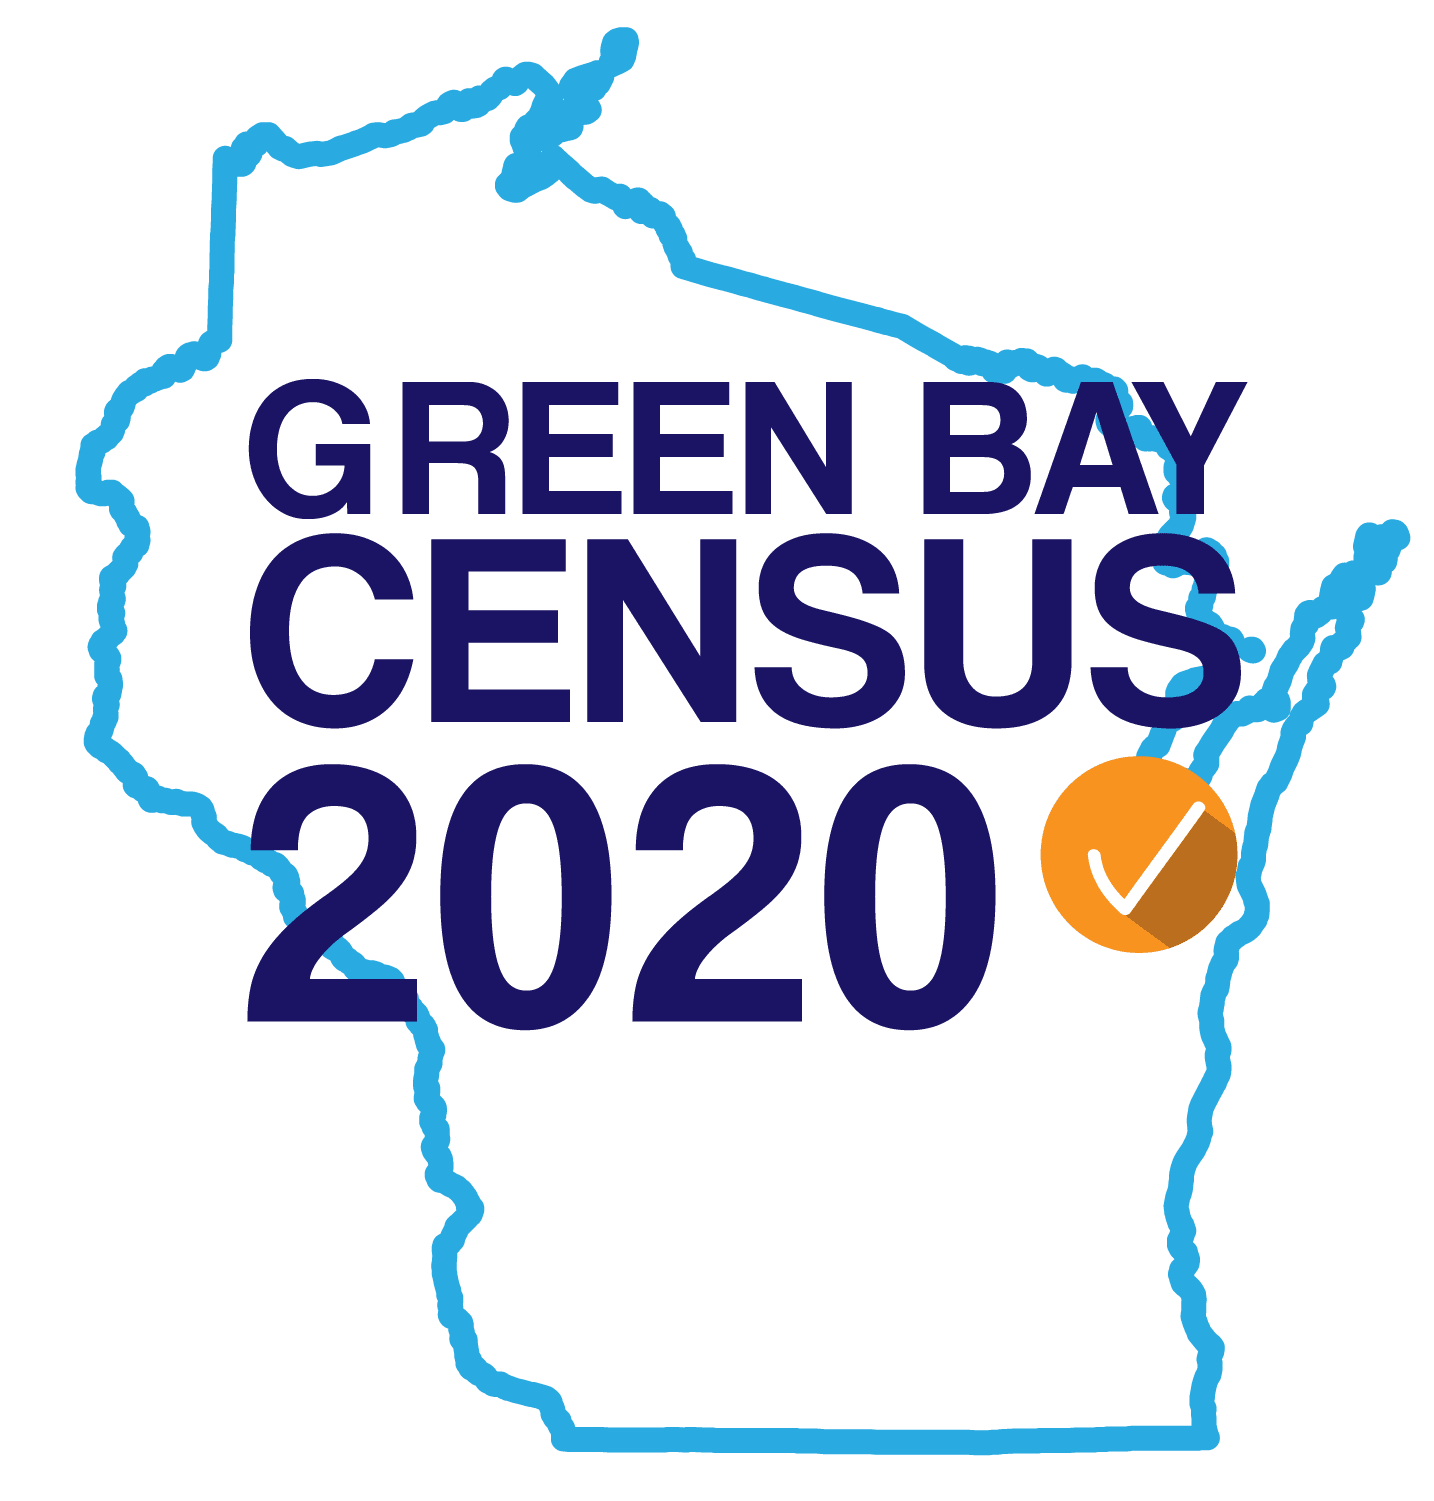 GB Census 2020 logo